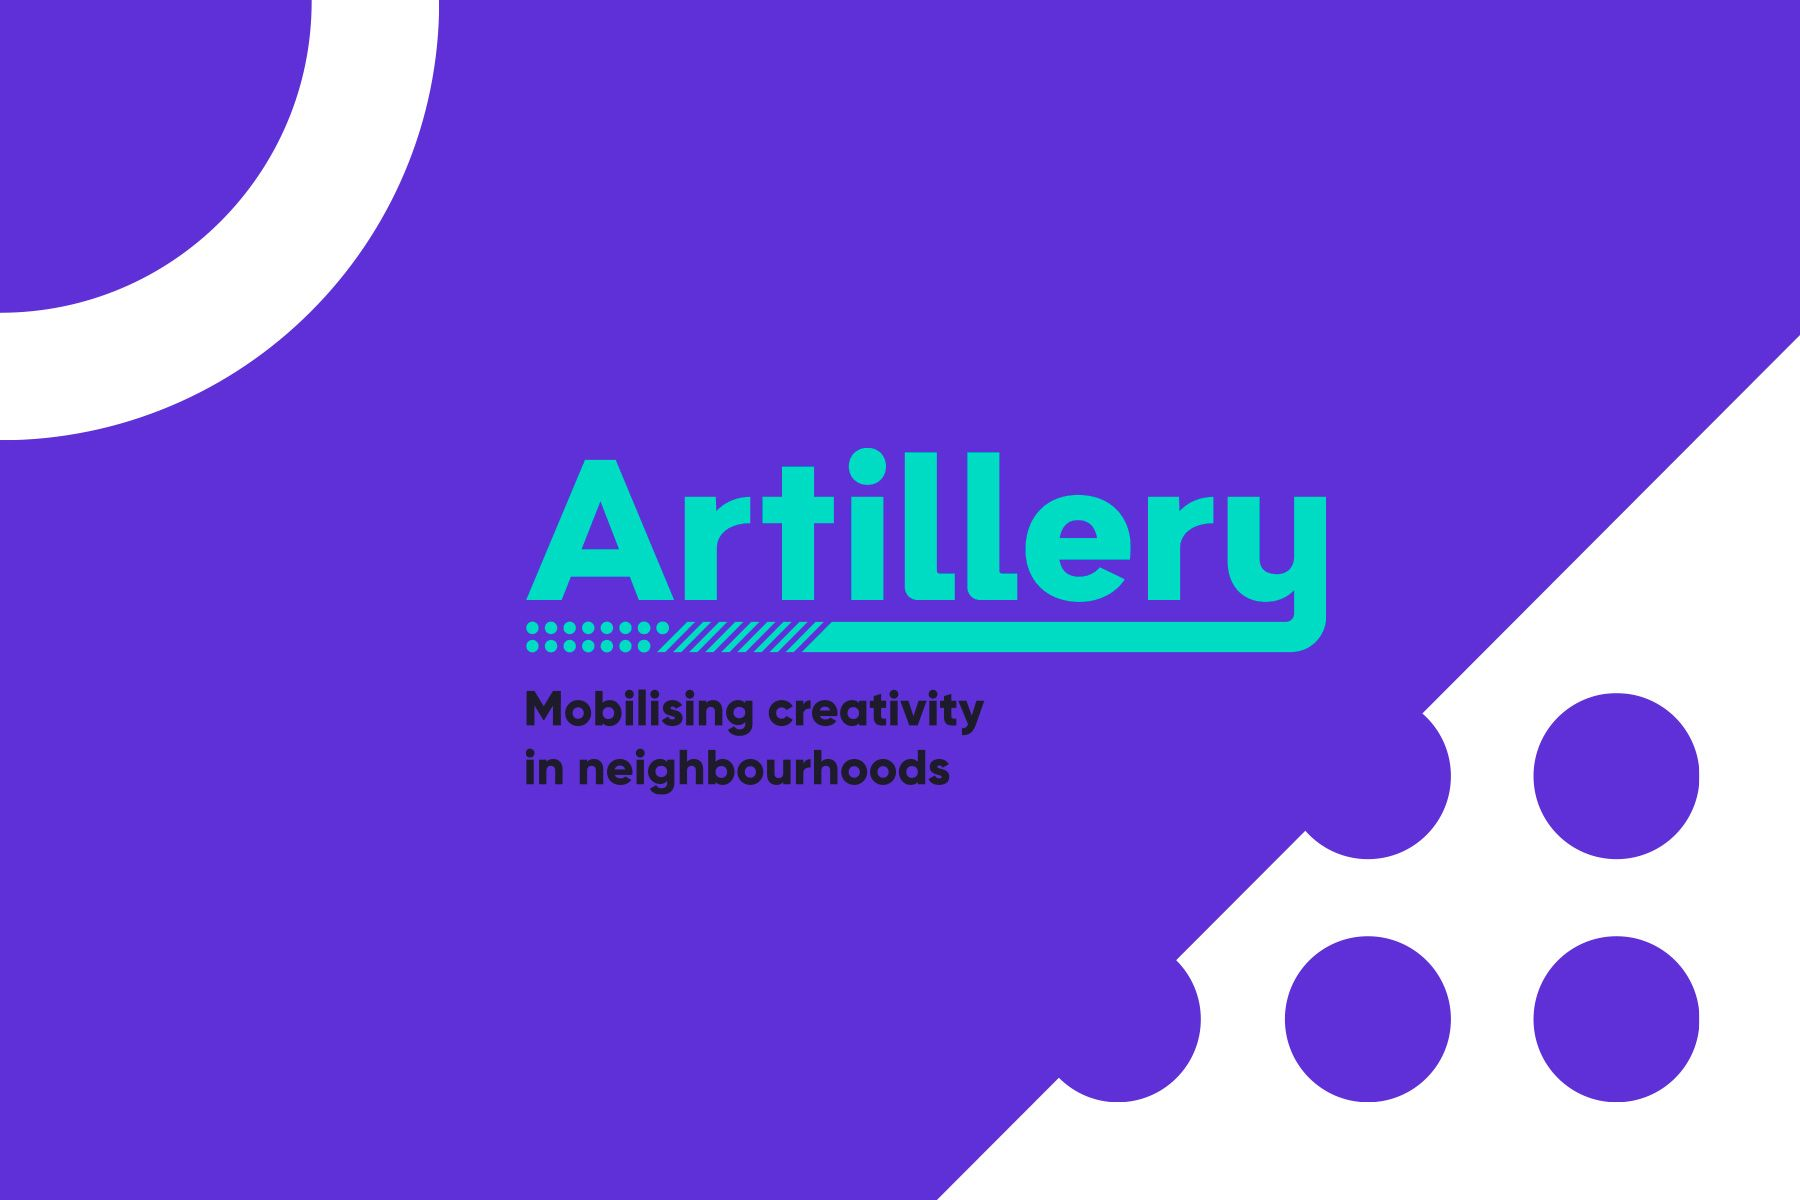 Artillery / Mobilising creativity in neighbourhoods